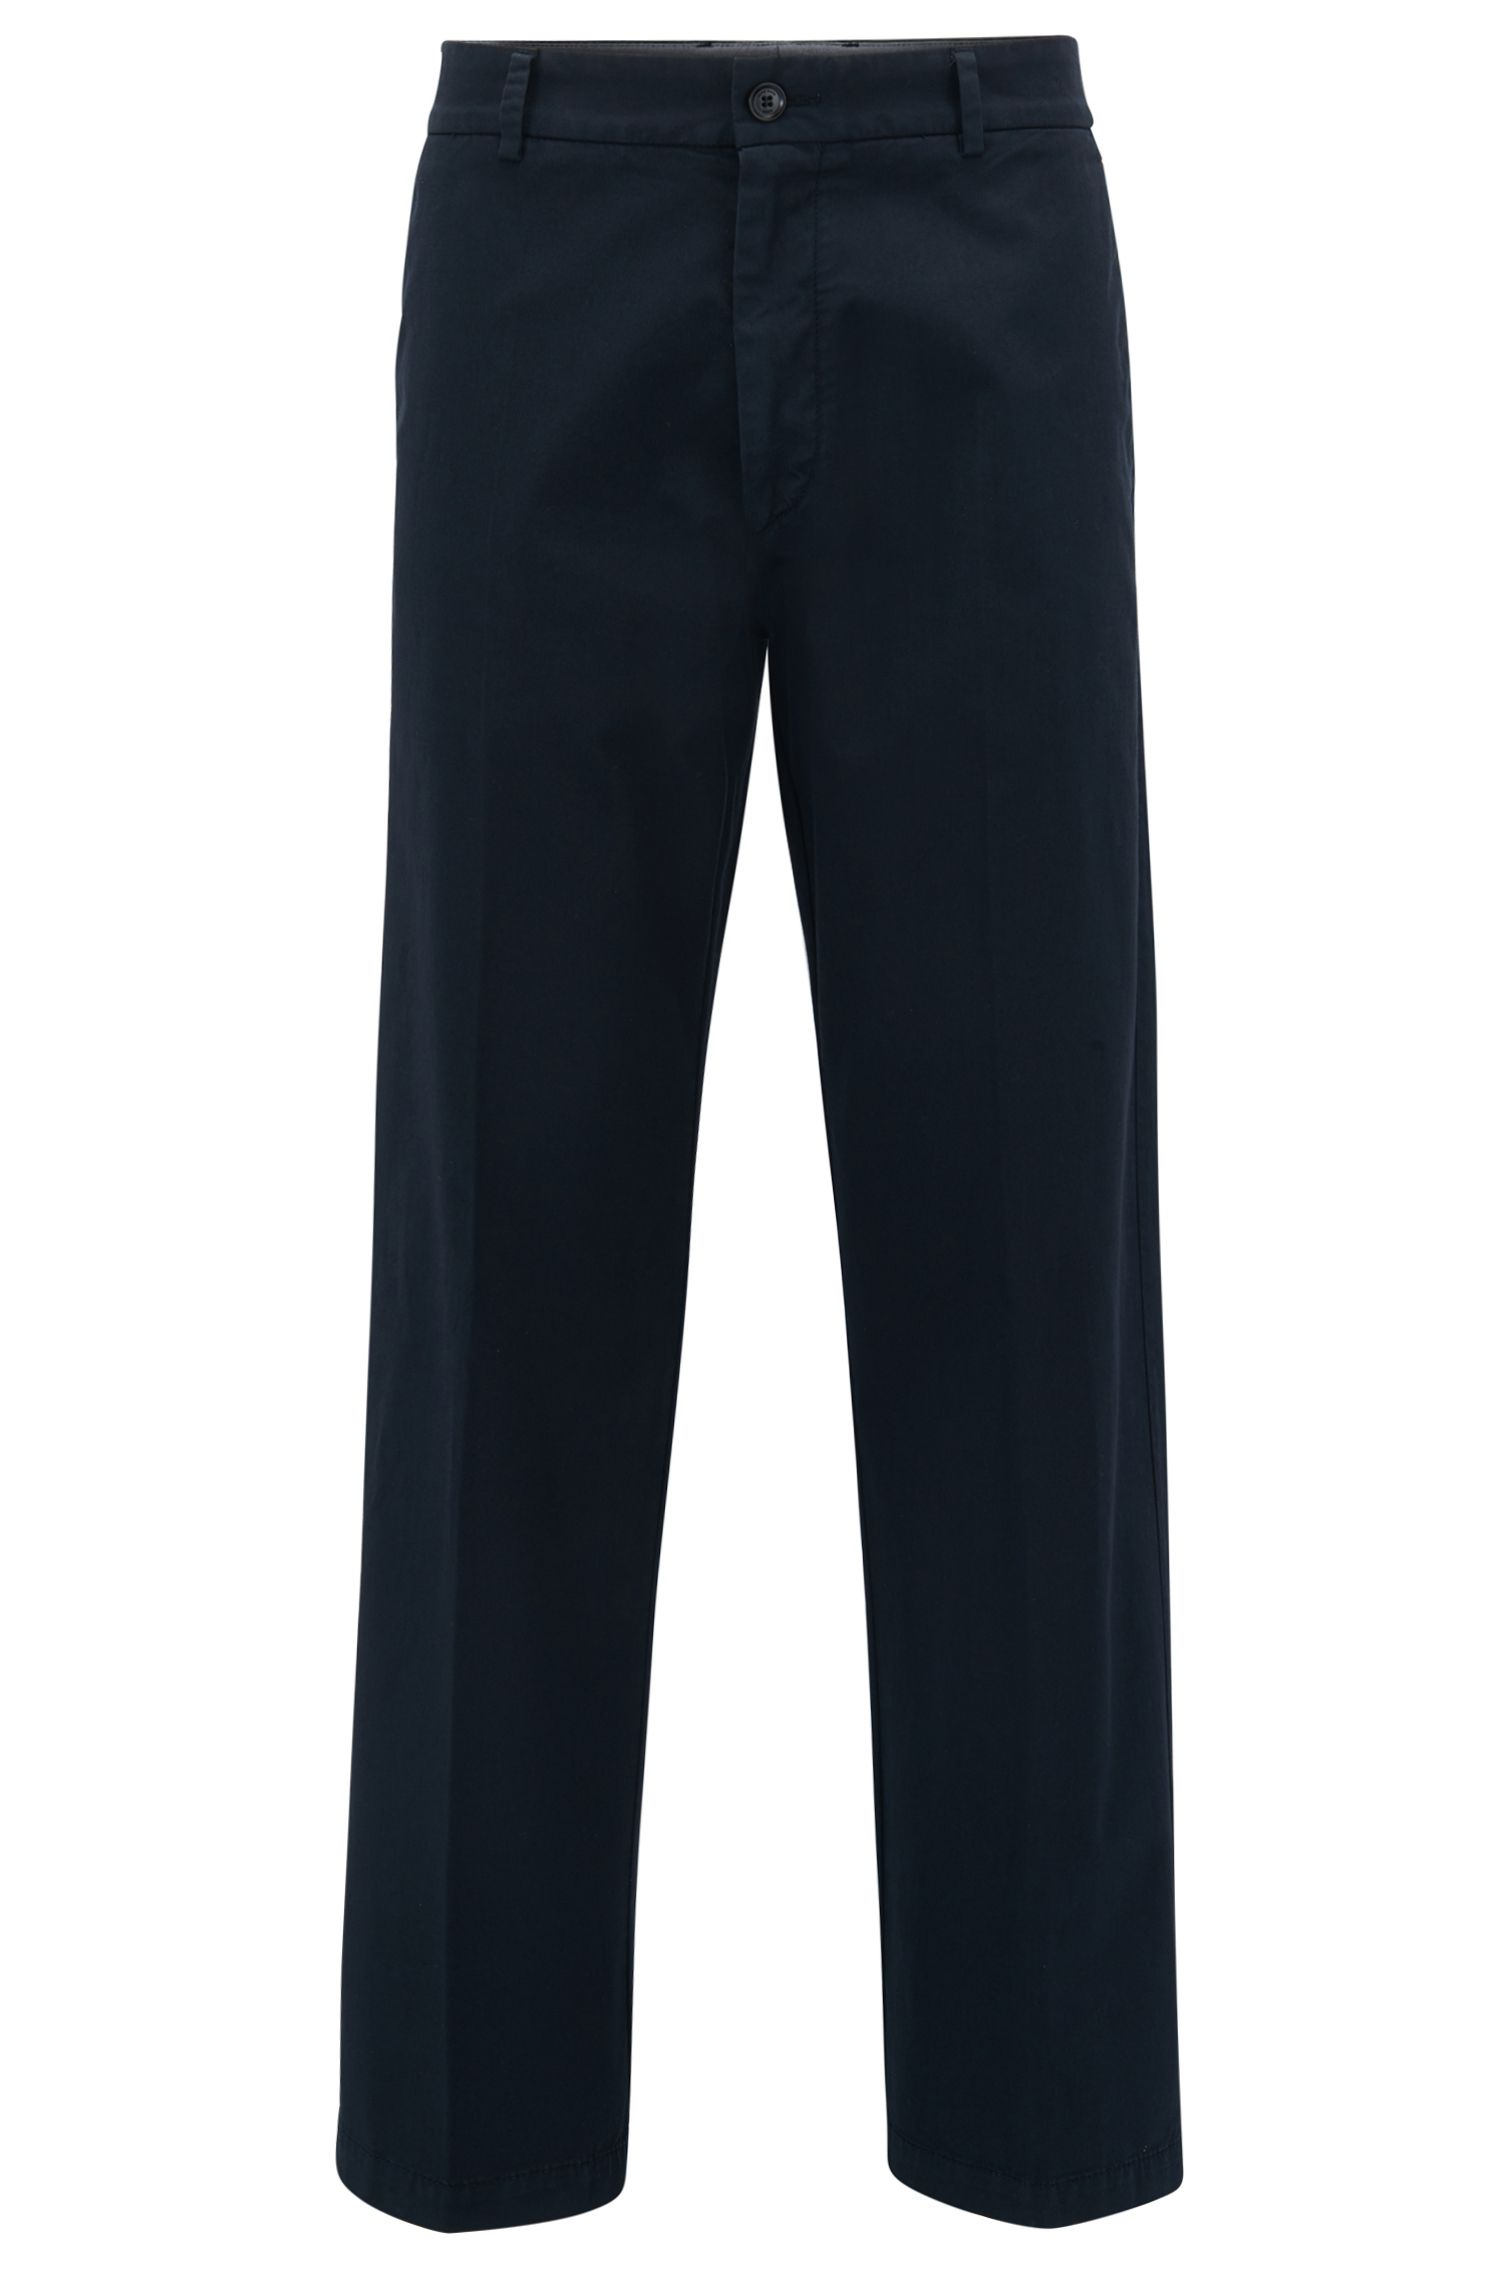 Pantalon Relaxed Fit à jambes larges, en gabardine de coton stretch